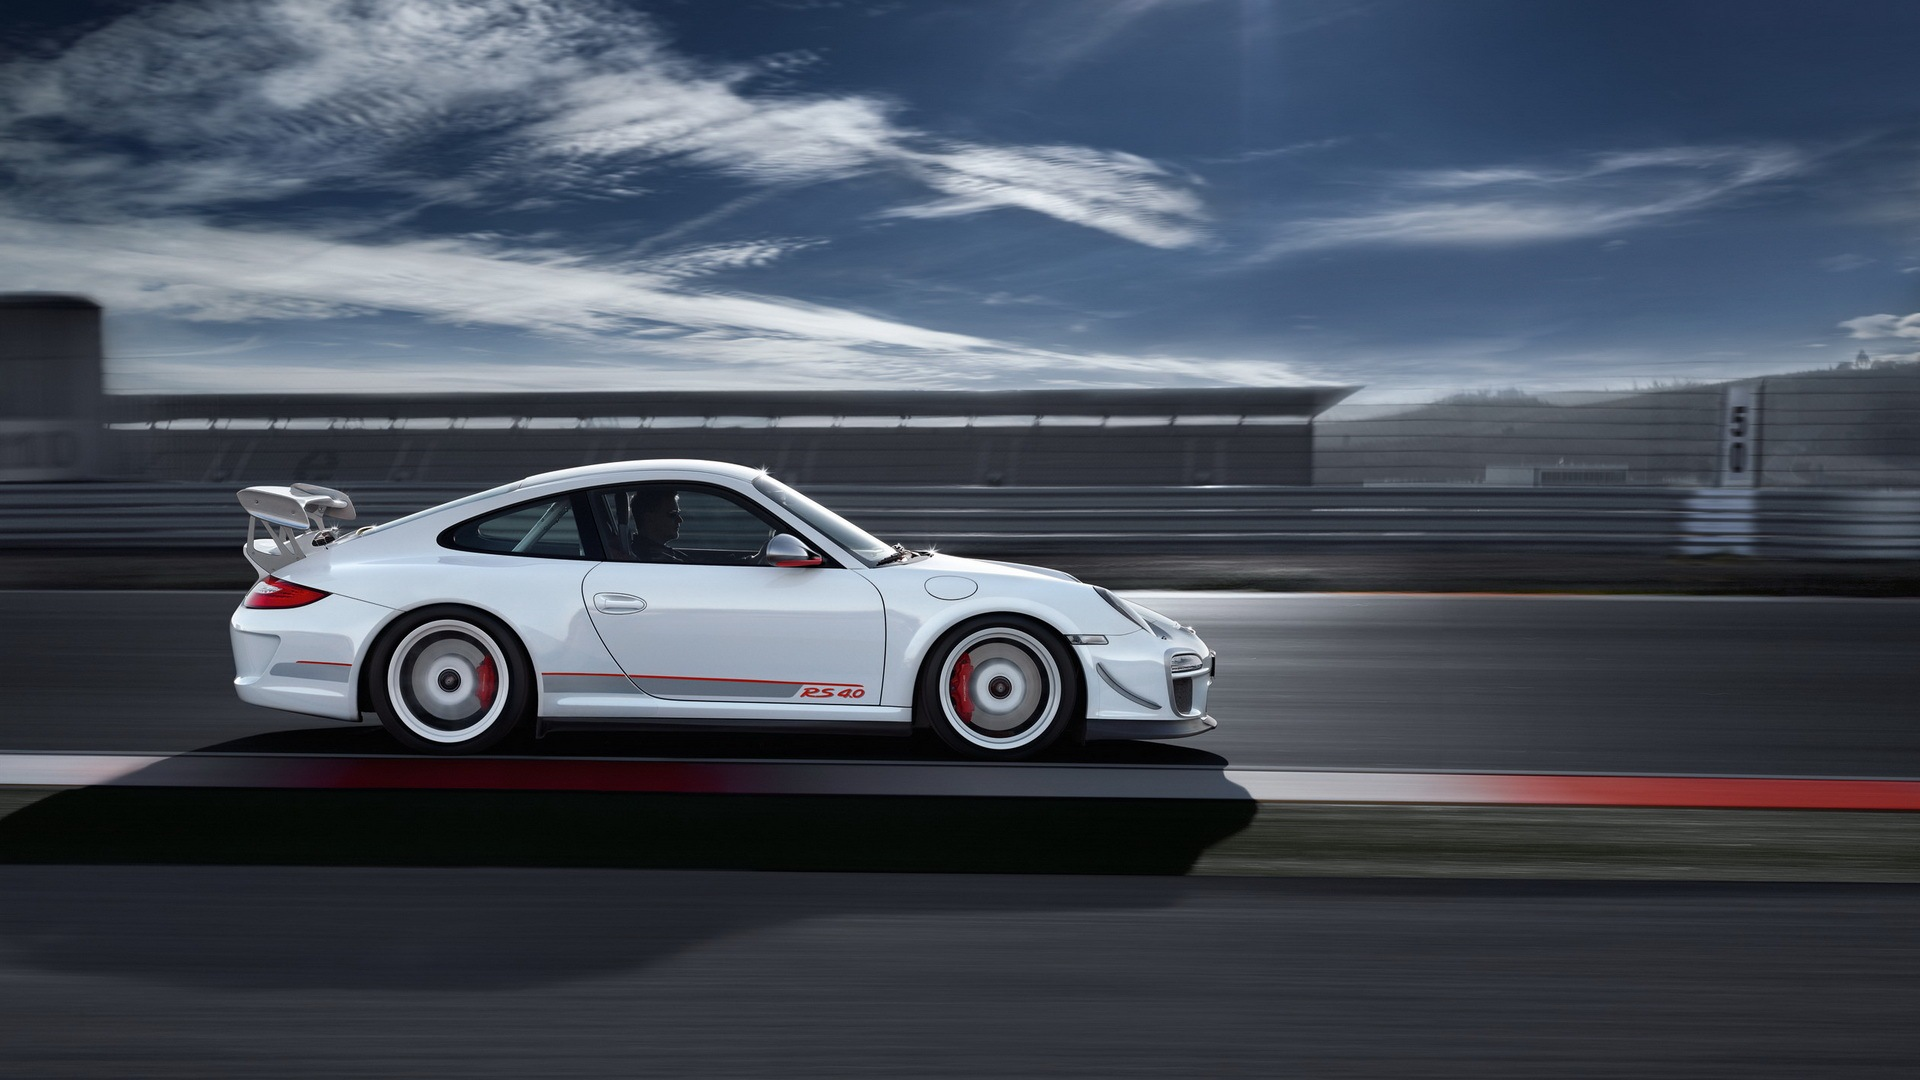 Porsche 911 GT3 RS 40 photos and wallpapers   tuningnewsnet 1920x1080